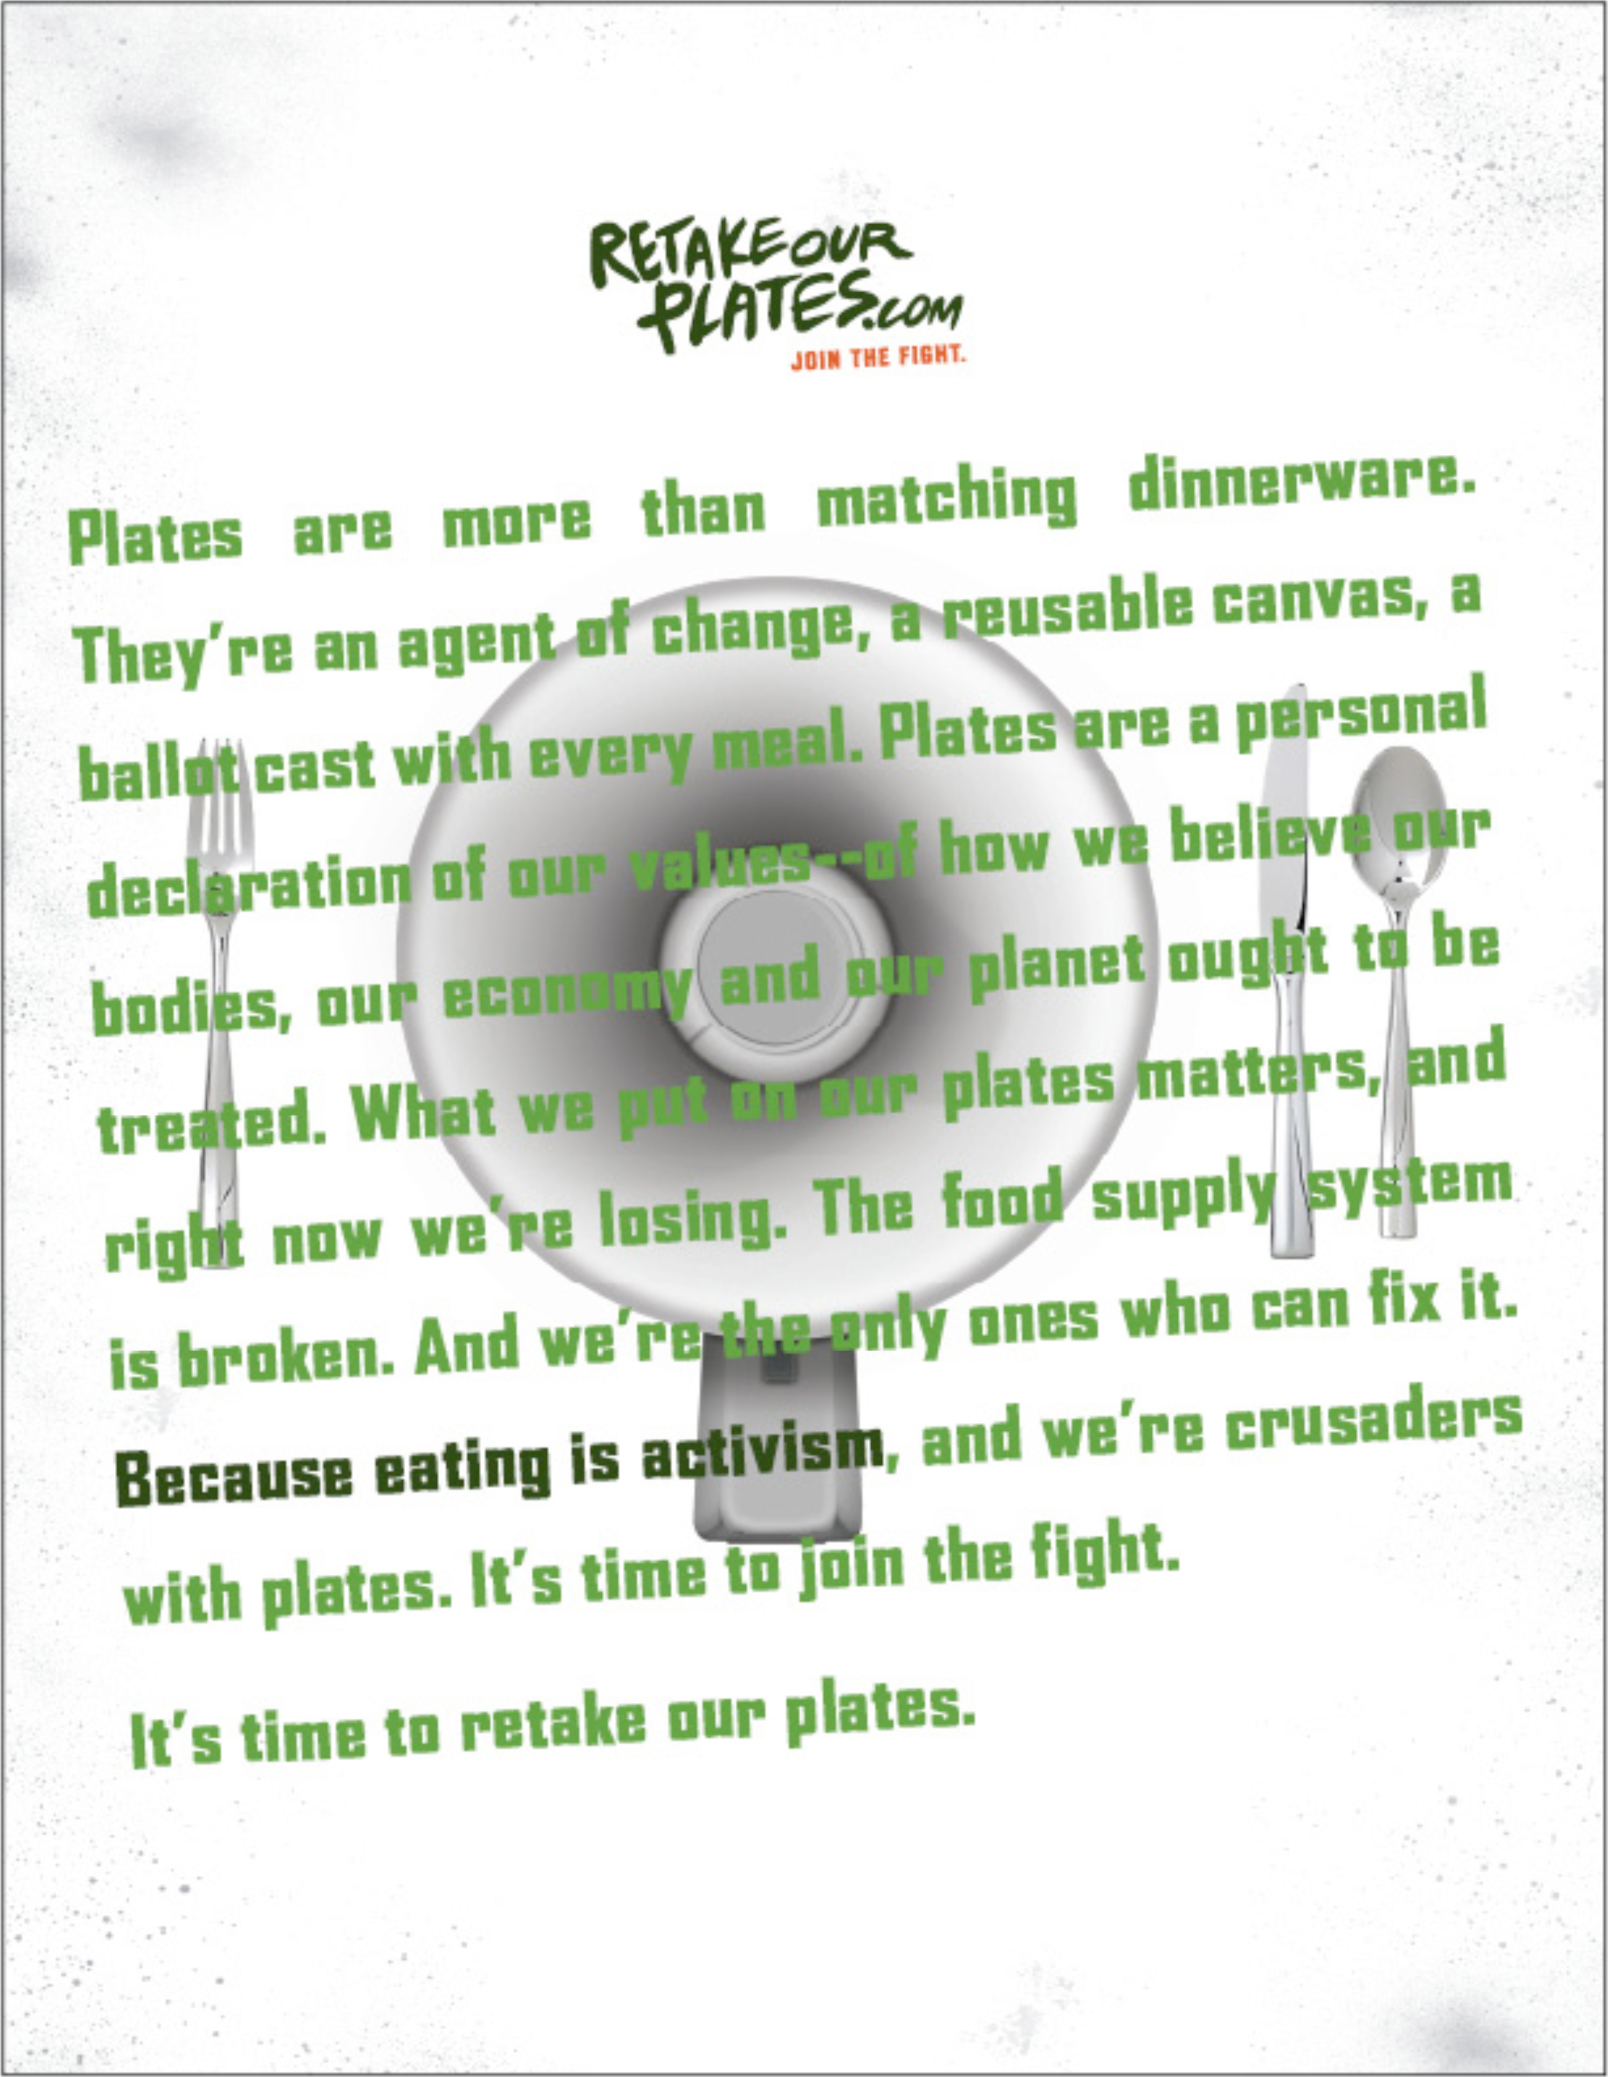 MANIFESTO COPY:  Plates are more than matching dinnerware. They're an agent of change, a reusable canvas, a ballot cast with every meal. Plates are a personal declaration of our values—of how we believe our bodies, our economy and our planet ought to be treated.  What we put on our plates matters, and right now we're losing. The food supply system is broken. And we're the only ones who can fix it.  Because eating is activism , and we're crusaders with plates. It's time to join the fight.  It's time to retake our plates.